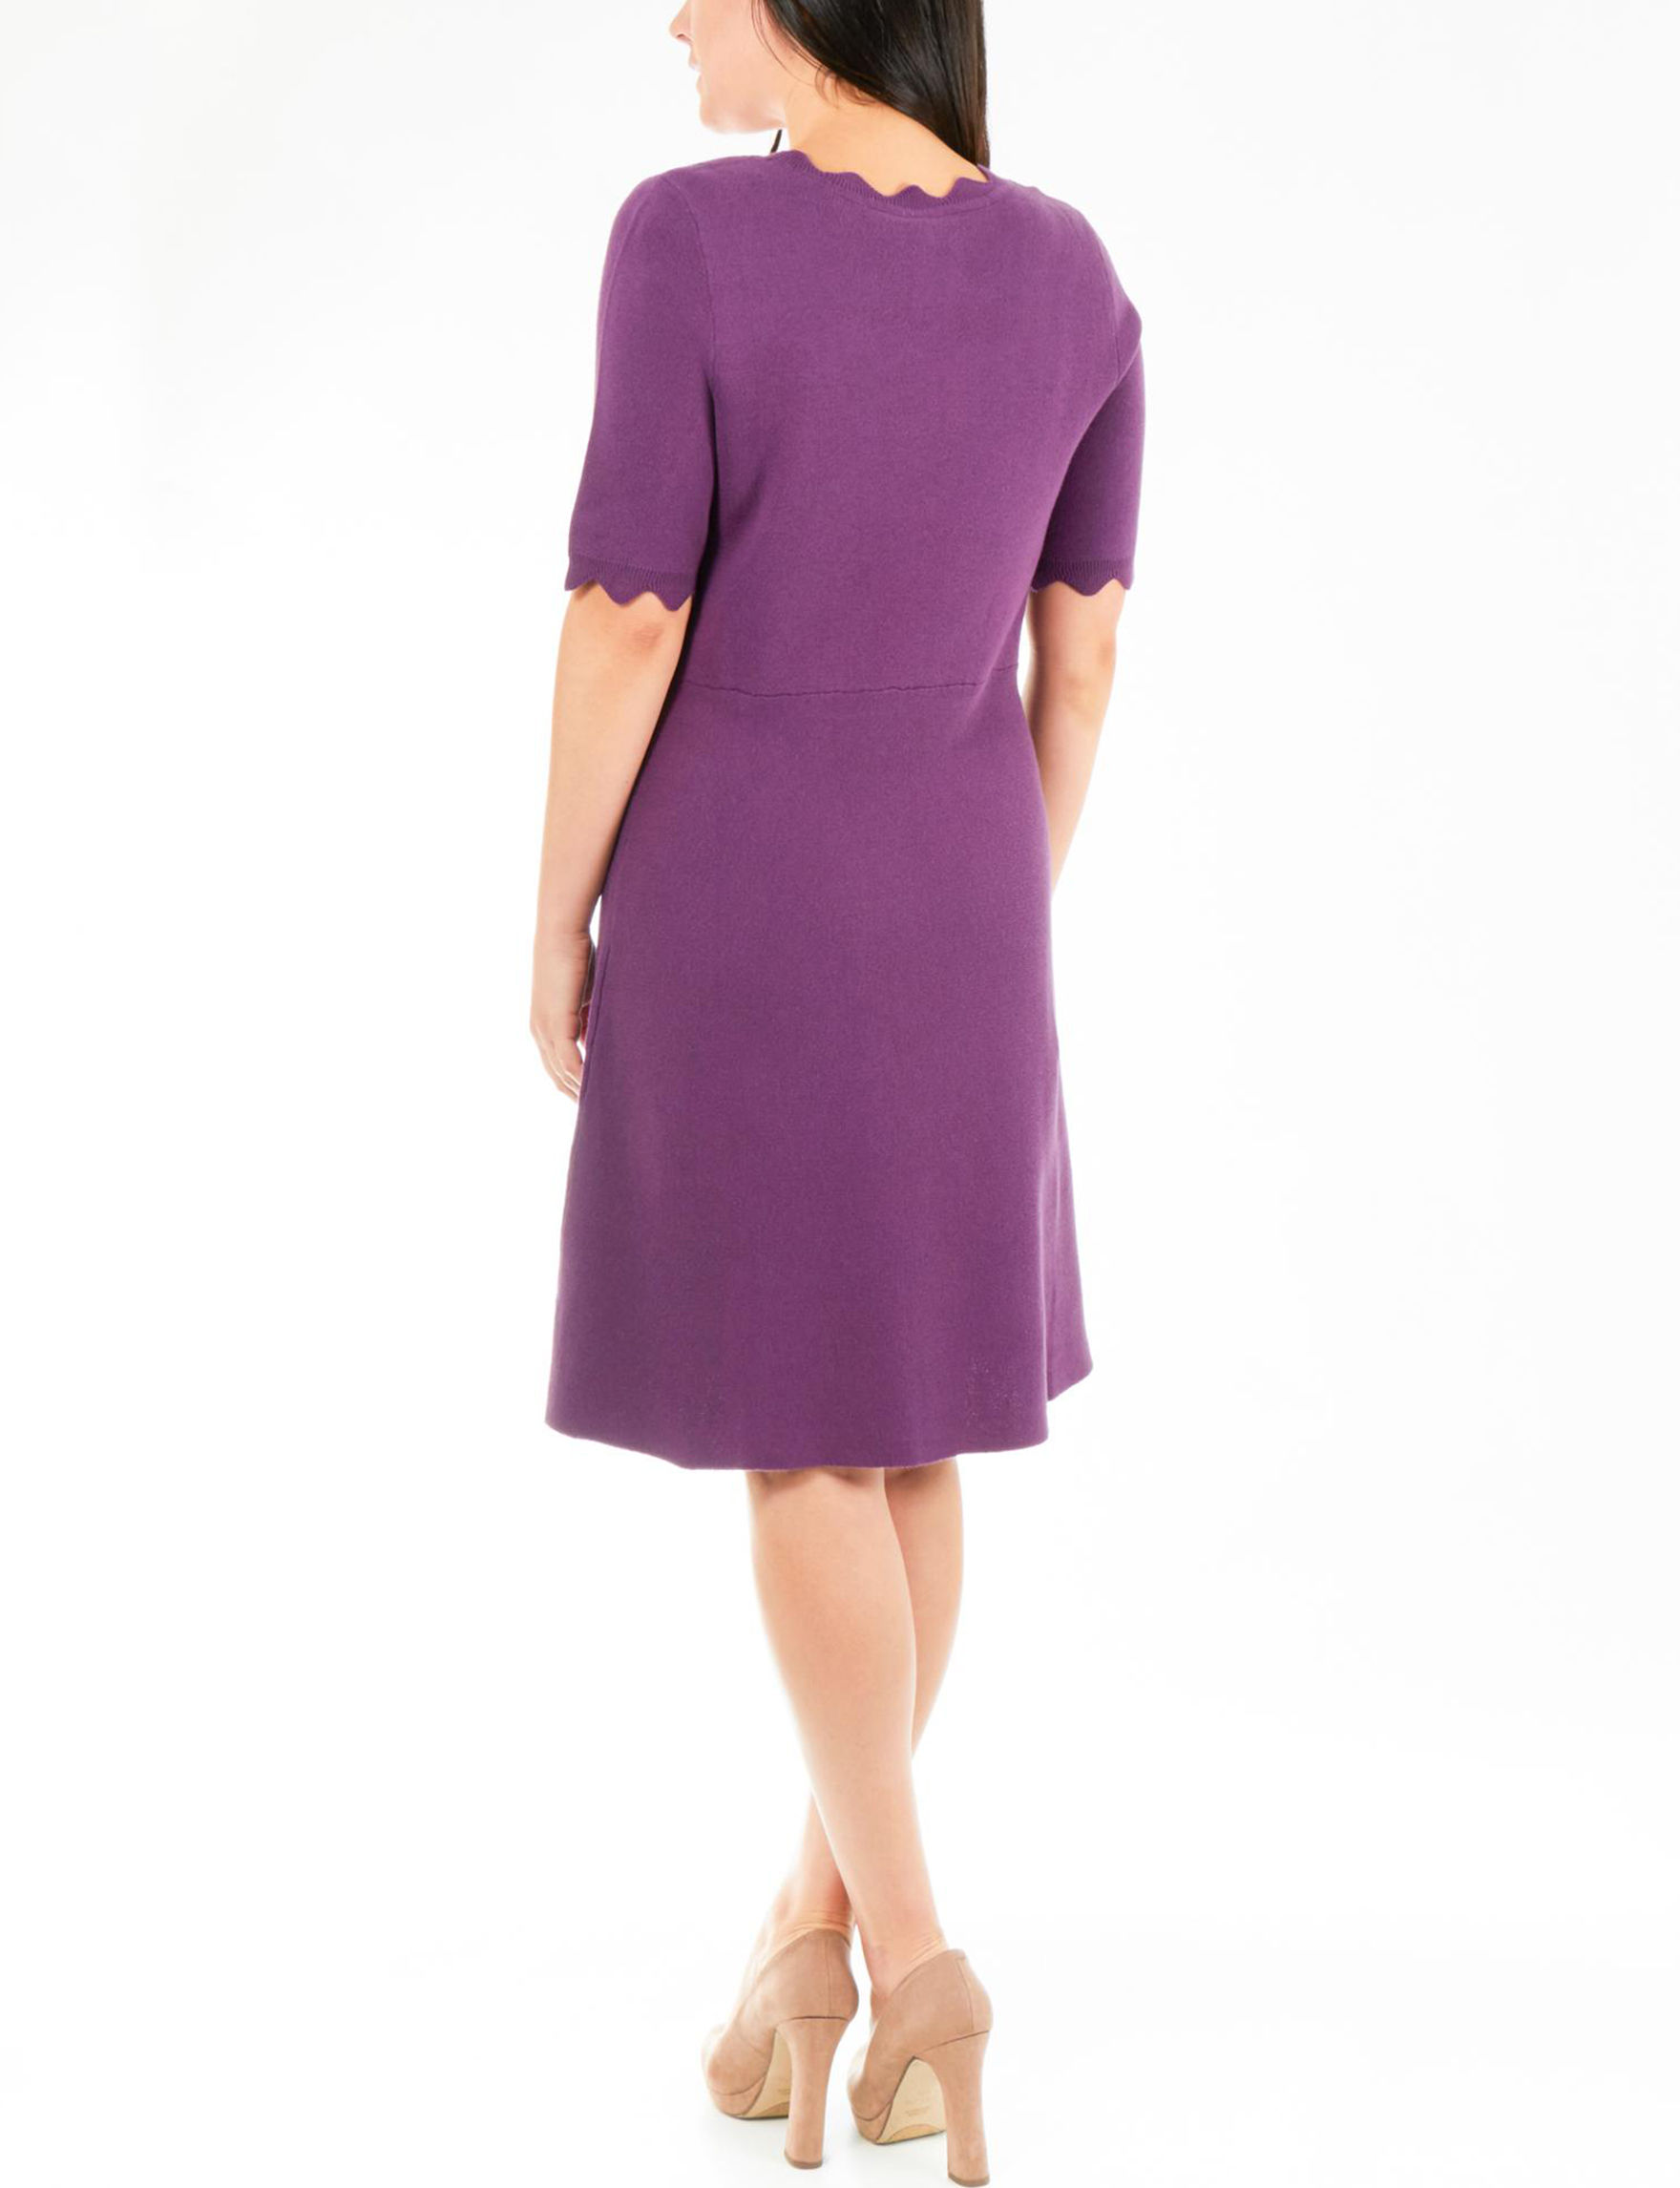 7b2bd83086 NY Collection Petite Scalloped Fit   Flare Sweater Dress